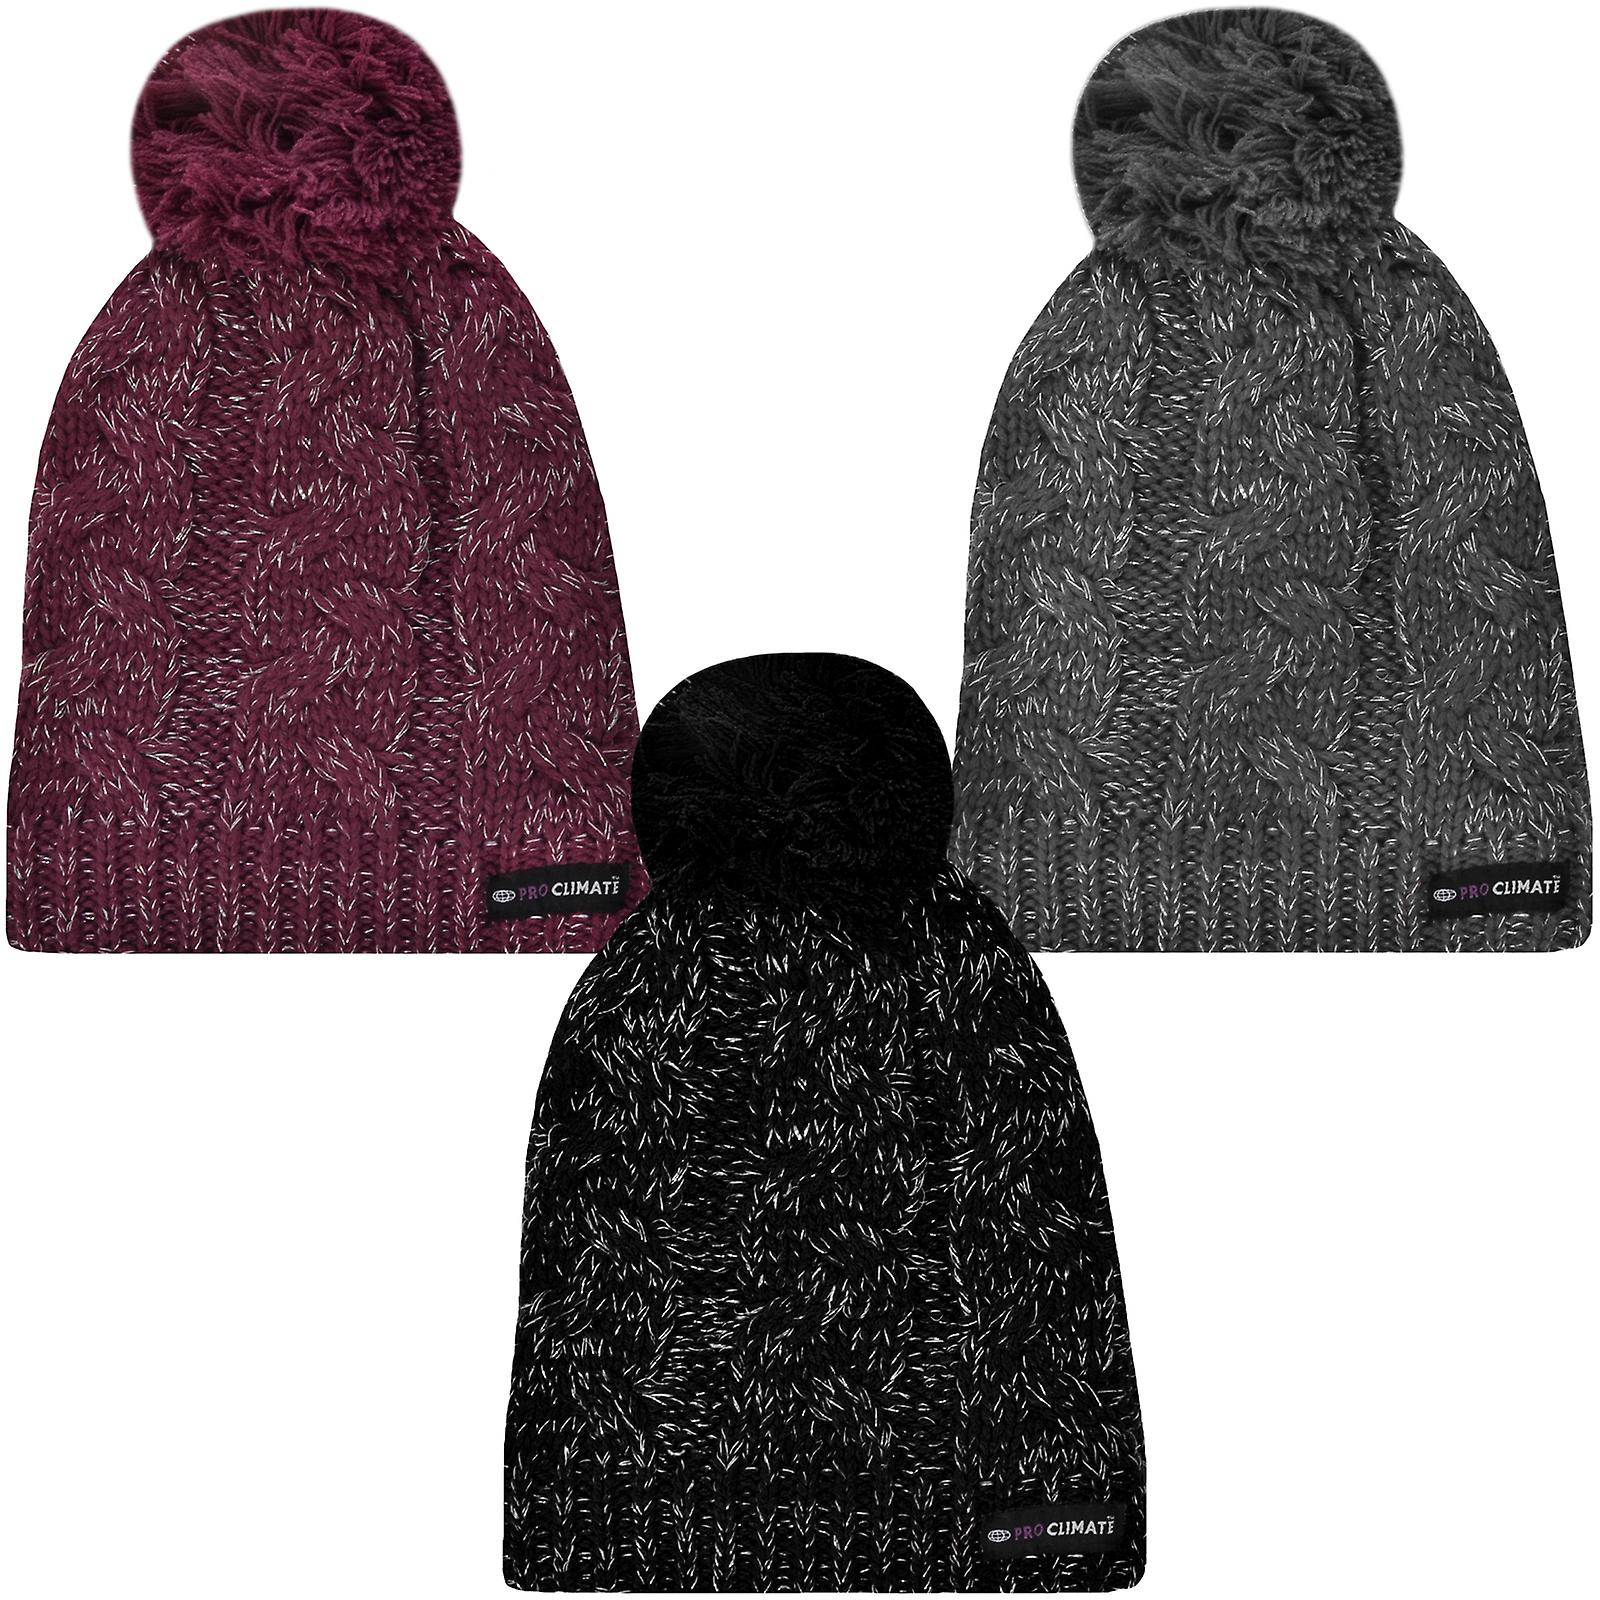 abfbb5d69 ProClimate Womens Thinsulate Waterproof Winter Knitted Beanie Pom Pom  Bobble Hat